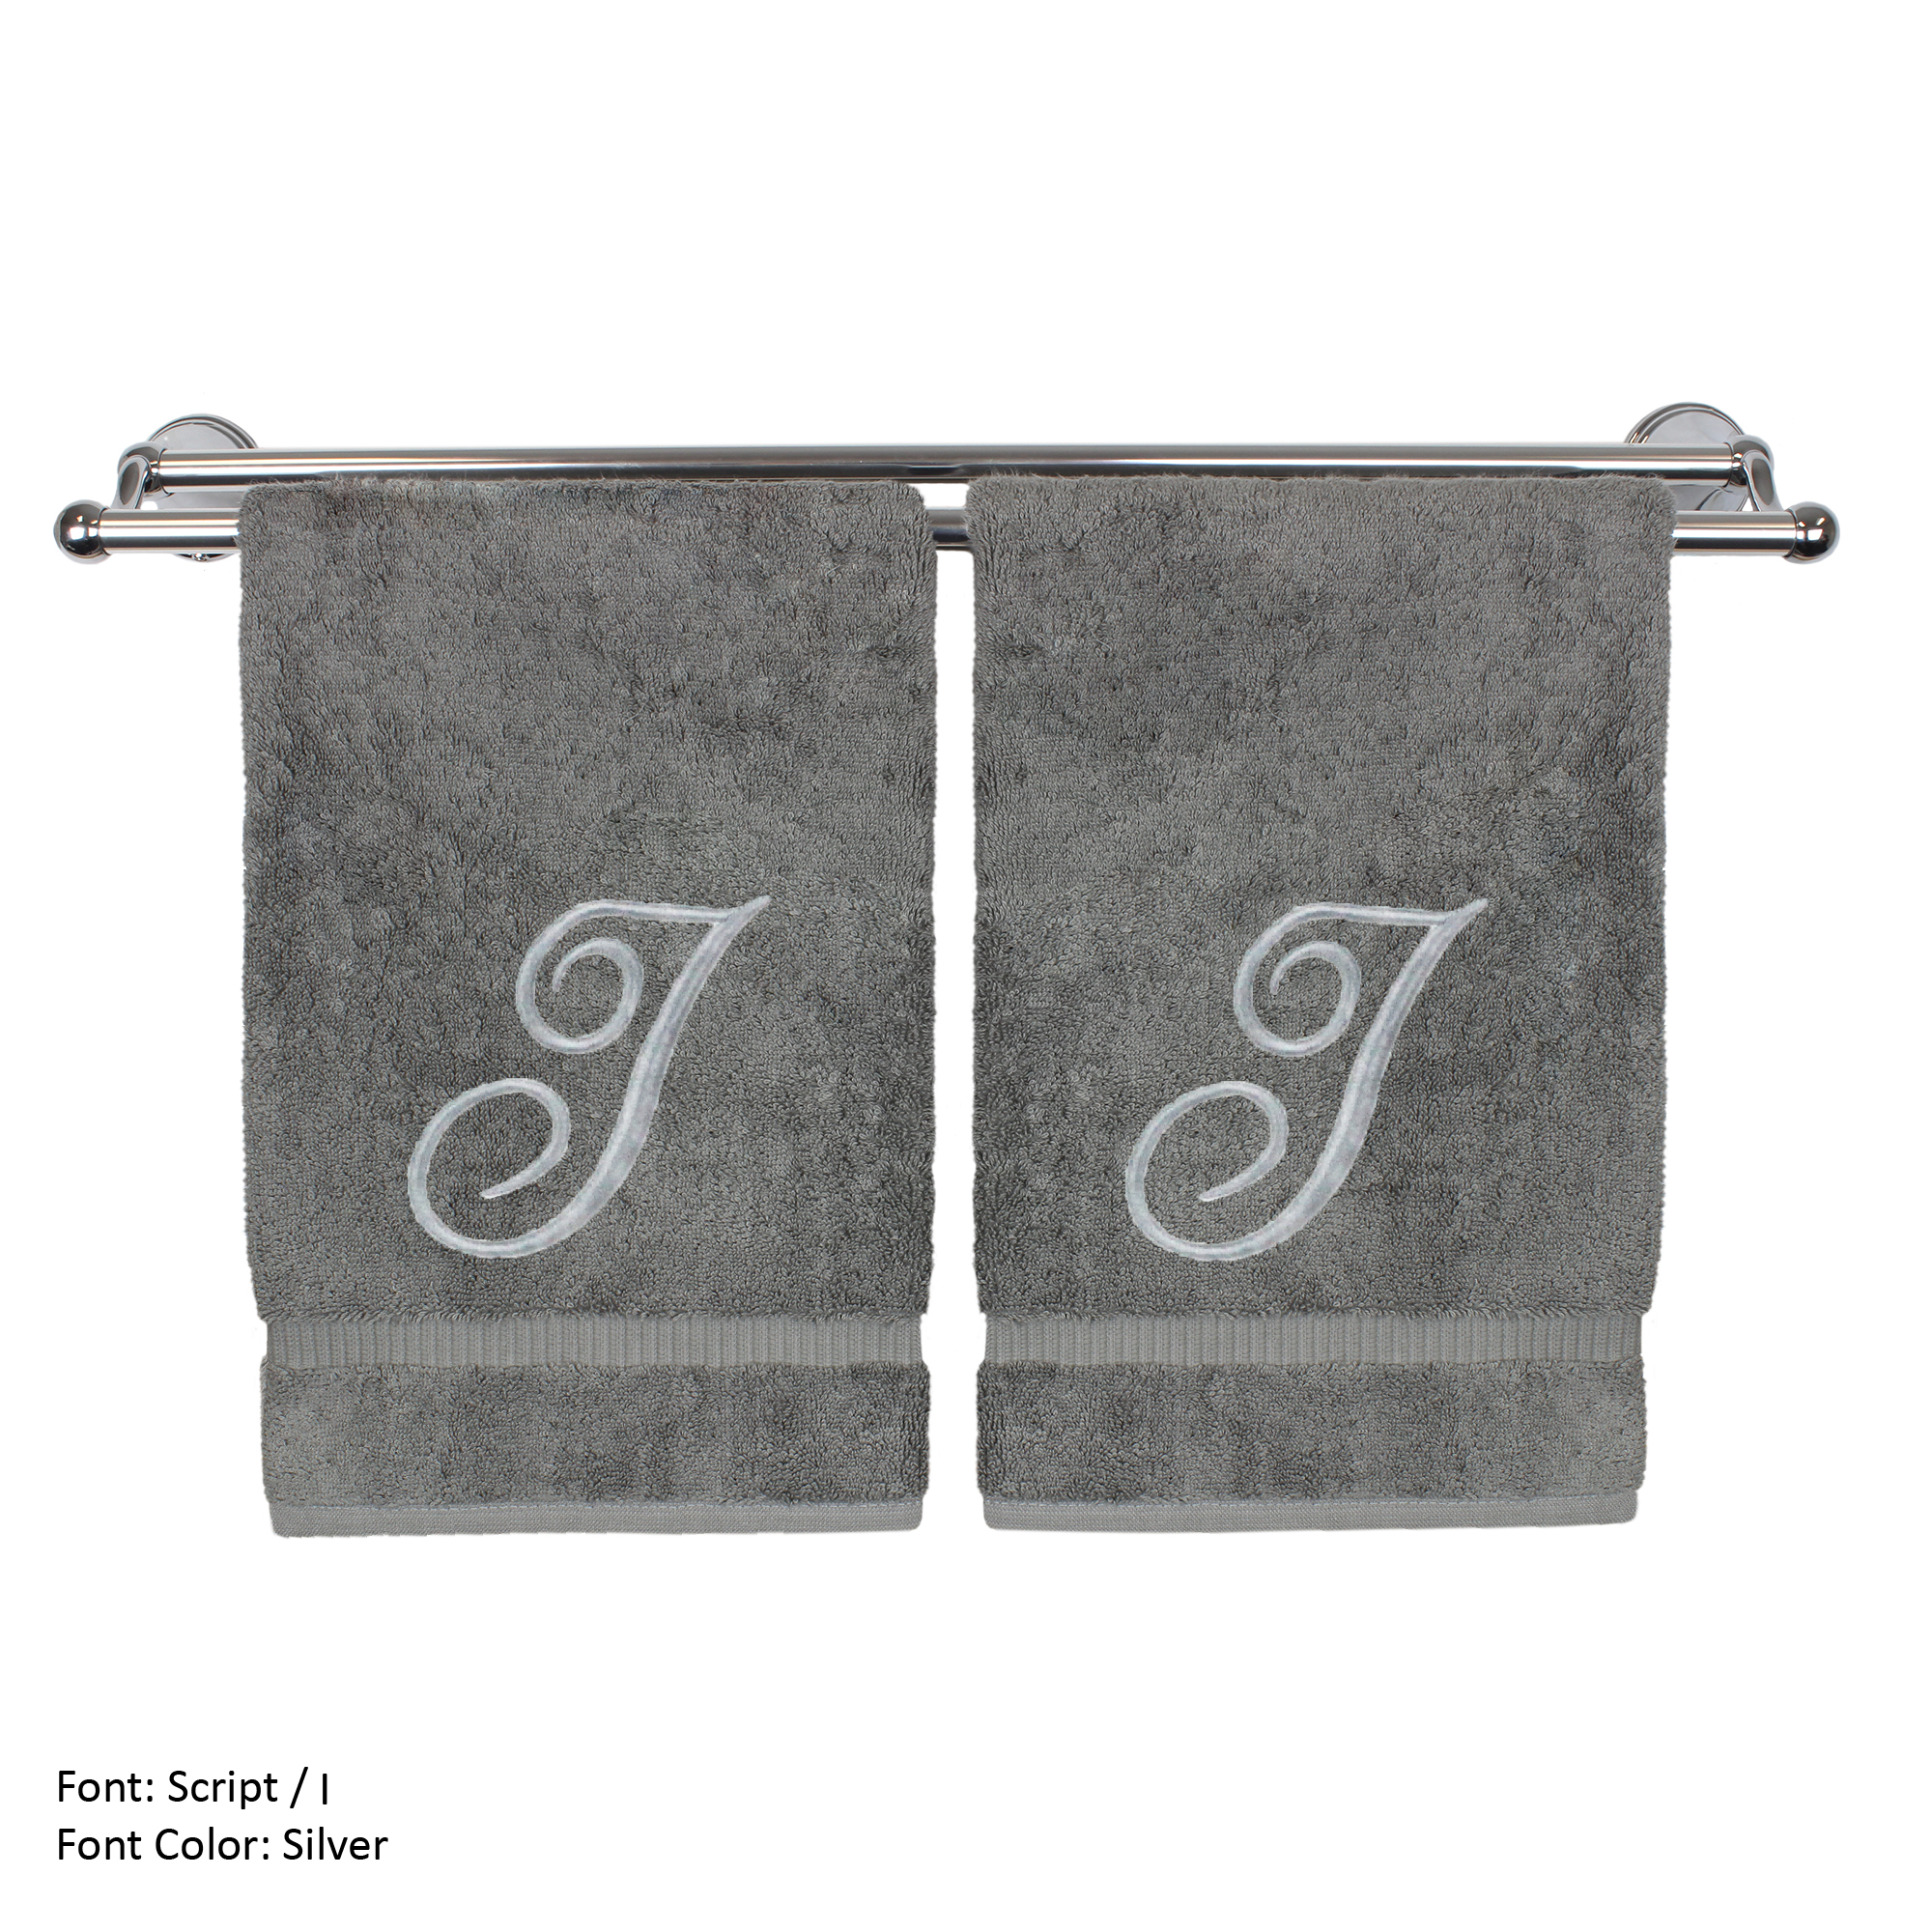 Monogrammed Washcloth Towel, Personalized Gift, 13x13 Inches - Set of 2 - Silver Script Embroidered Towel - Extra Absorbent 100% Turkish Cotton - Soft Terry Finish - Initial I Gray